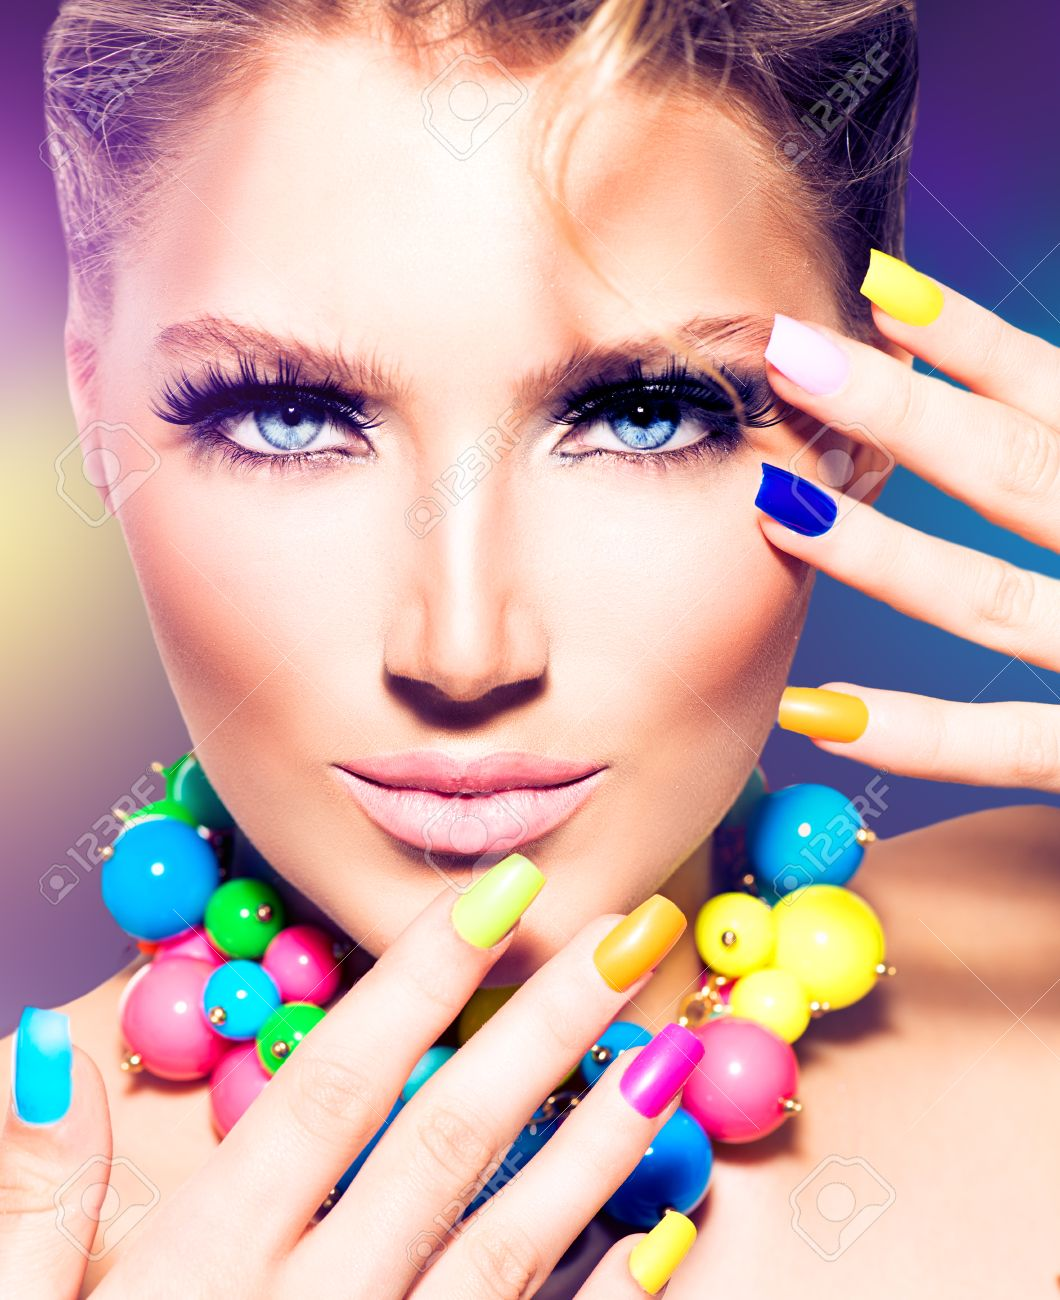 Fashion Beauty Model Girl With Colorful Nails Stock Photo, Picture ...